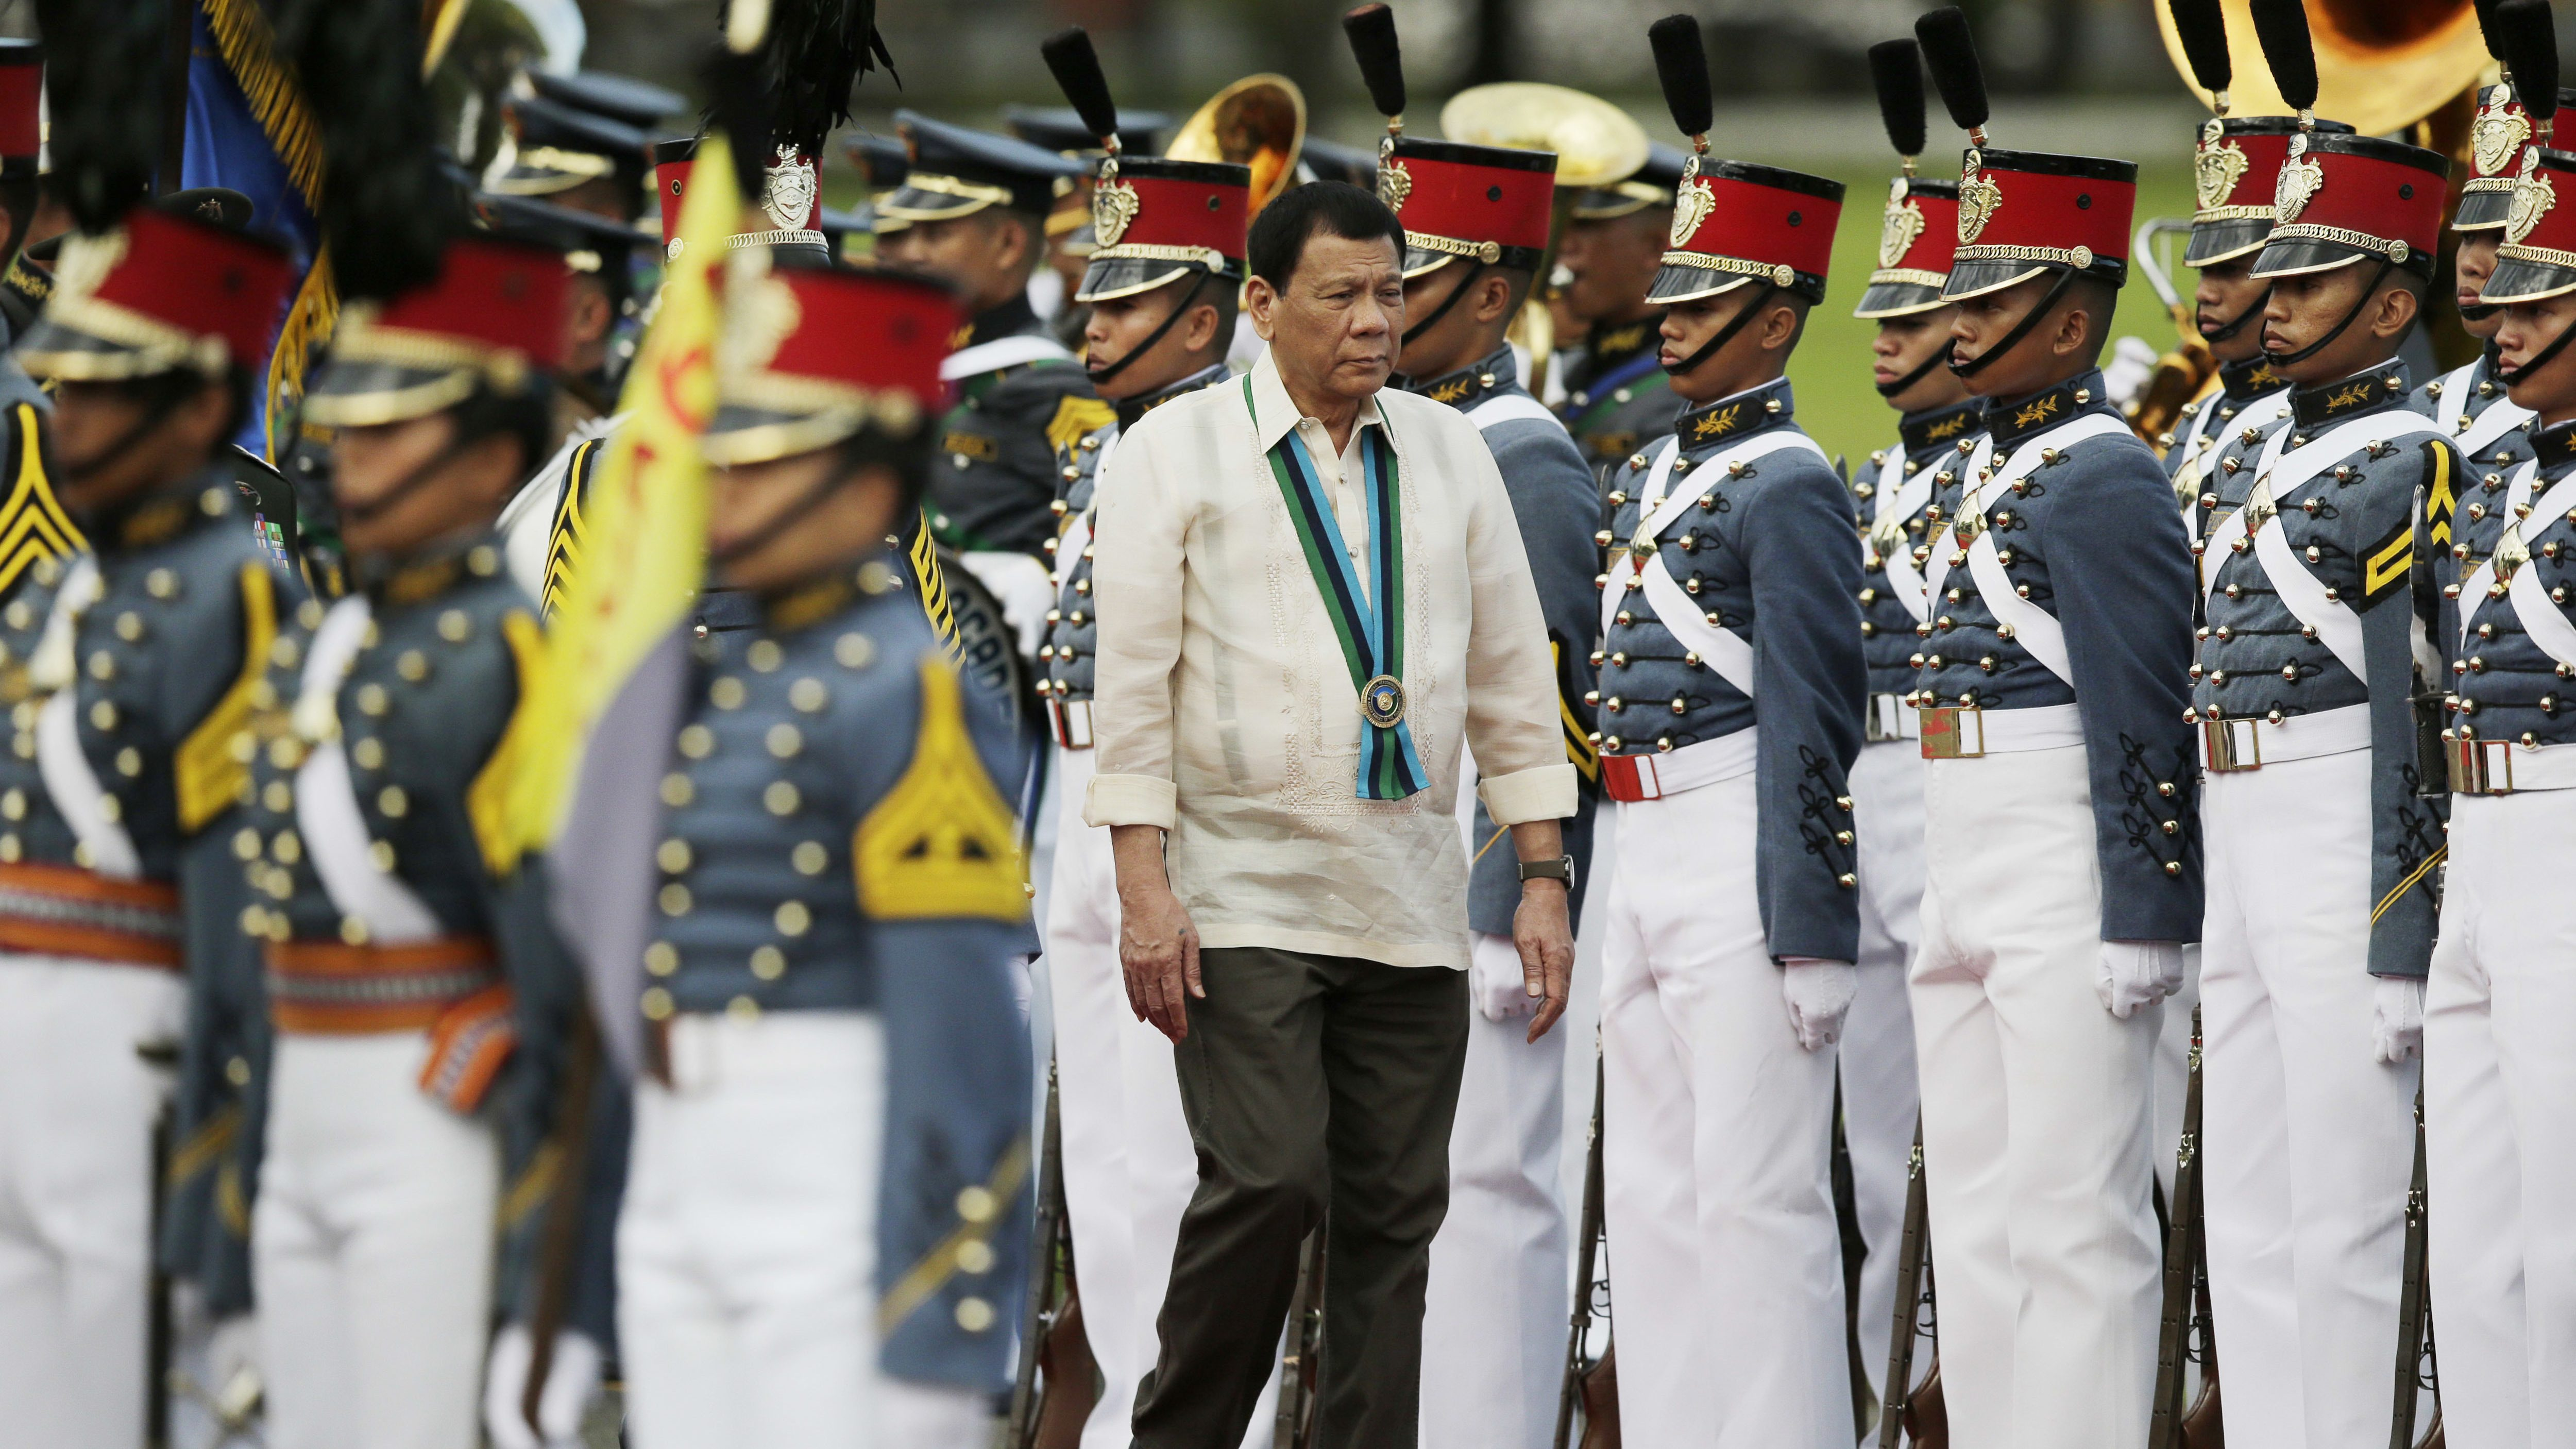 Philippine President Rodrigo Duterte inspects troops during the 81st anniversary of the Armed Forces of the Philippines at Camp Aguinaldo military headquarters in Quezon city, north of Manila, Philippines on Wednesday, Dec. 21, 2016.